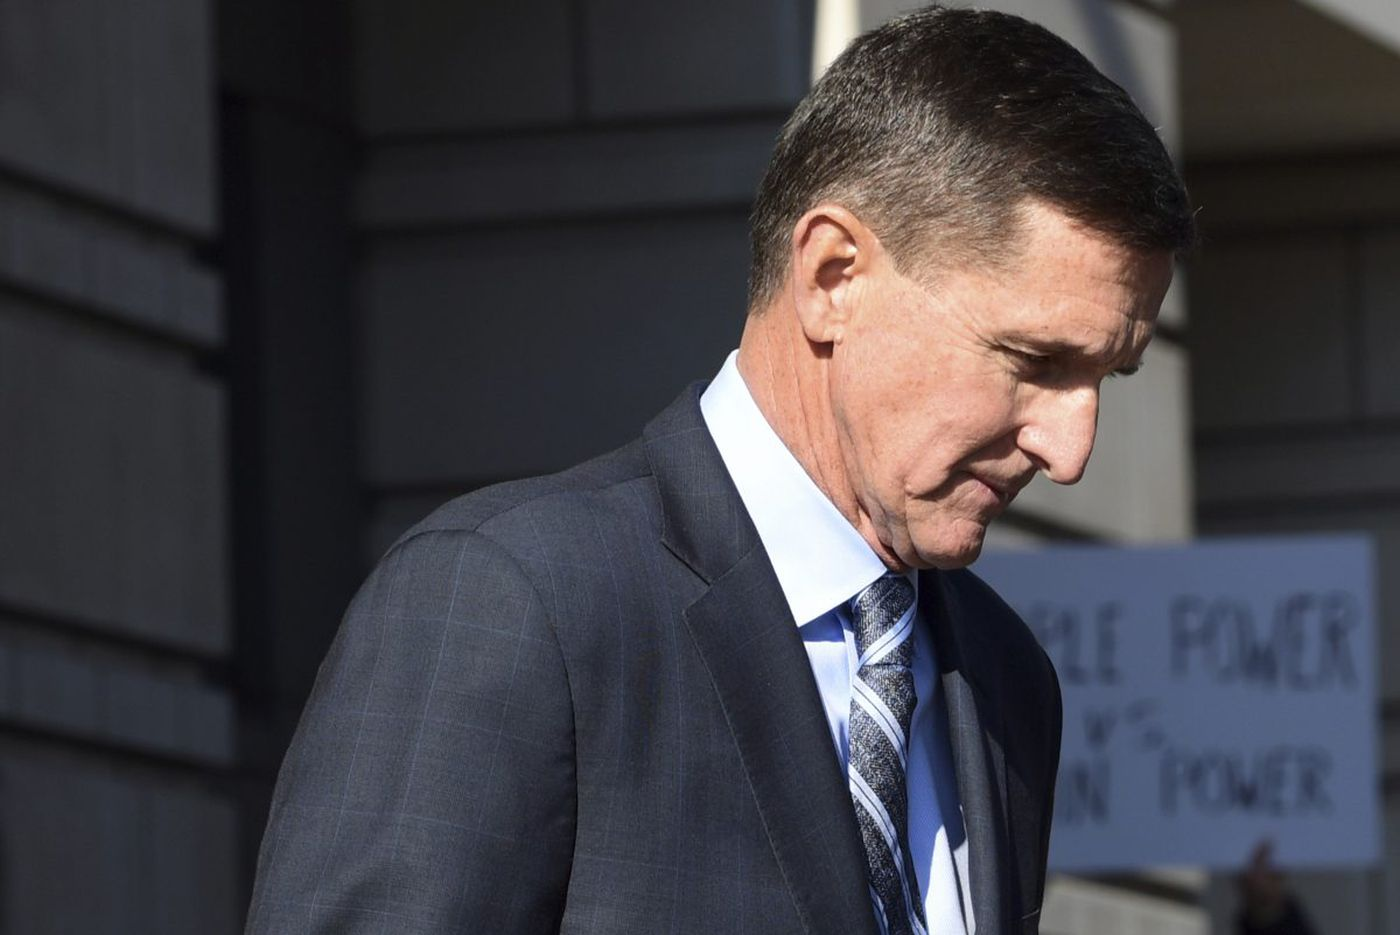 Timeline: Michael Flynn, the Russia probe, and the Trump campaign